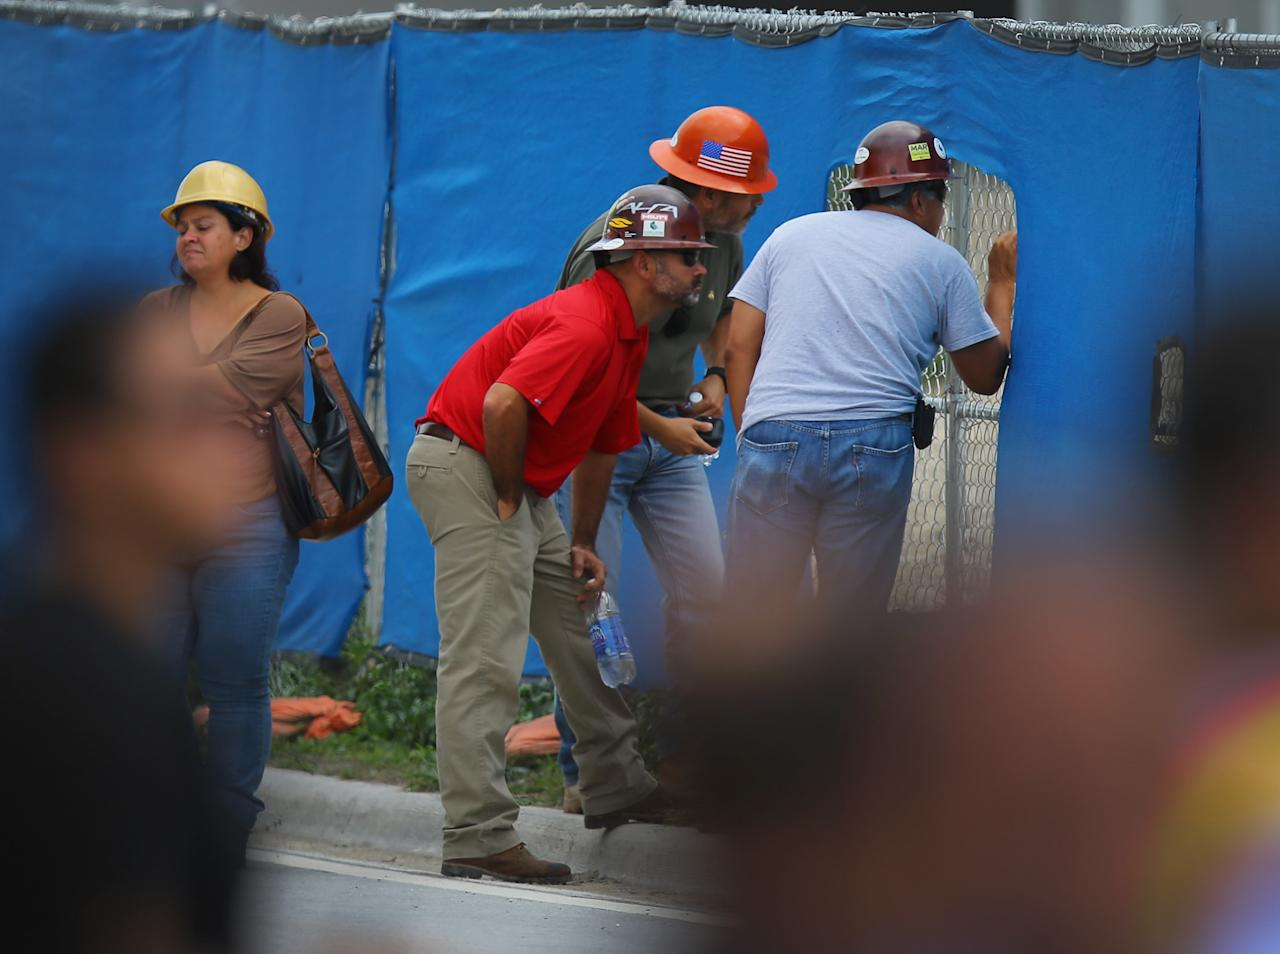 DORAL, FL - OCTOBER 10: Construction workers watch as search and rescue people look for possible survivors in the rubble of a four-story parking garage that was under construction and collapsed at the Miami Dade College's West Campus on October 10, 2012 in Doral, Florida.  Early reports indicate that one person was killed, at least seven people injured and an unknown number of people may be buried in the rubble.  (Photo by Joe Raedle/Getty Images)